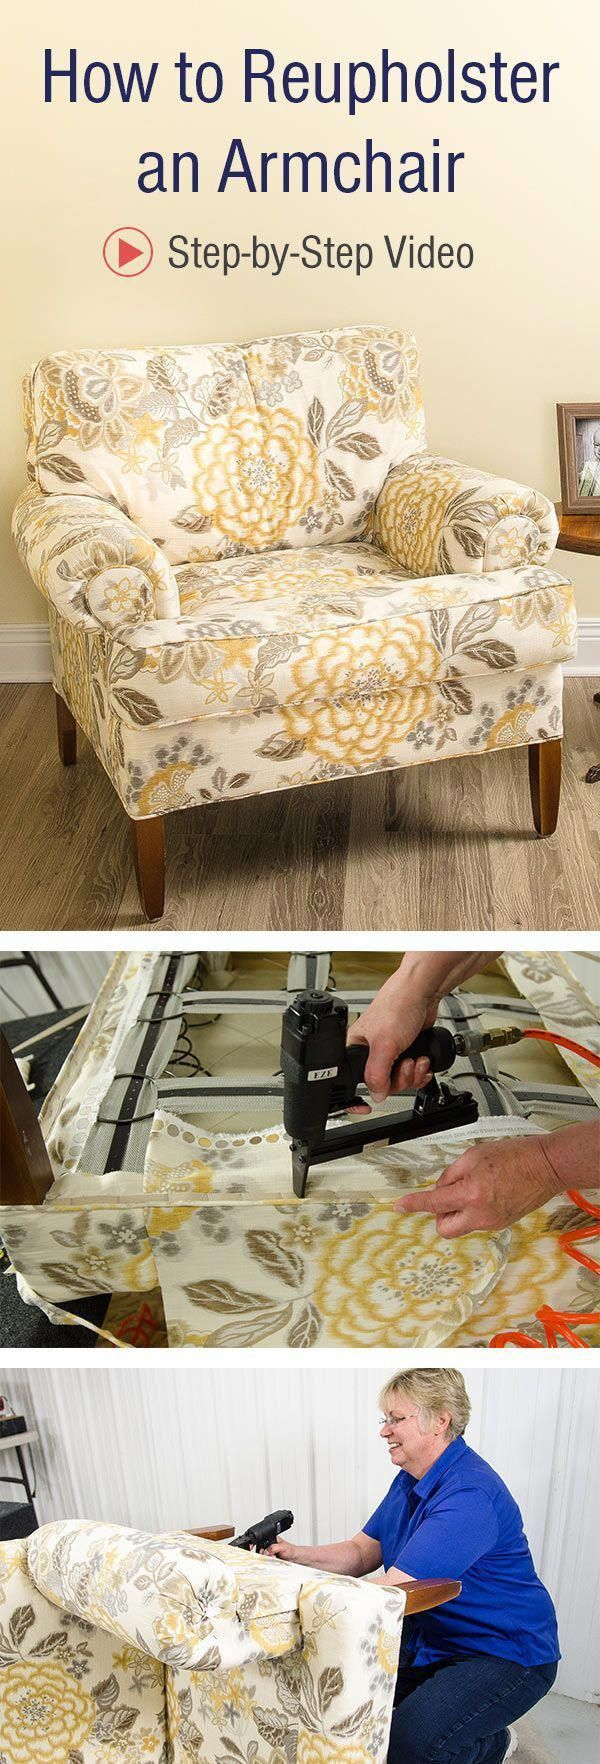 Follow Our Step By Step Video Instructions And Learn How To Reupholster An Armchair Reupholsterchair Fur Upholstery Diy Redo Furniture Reupholster Furniture